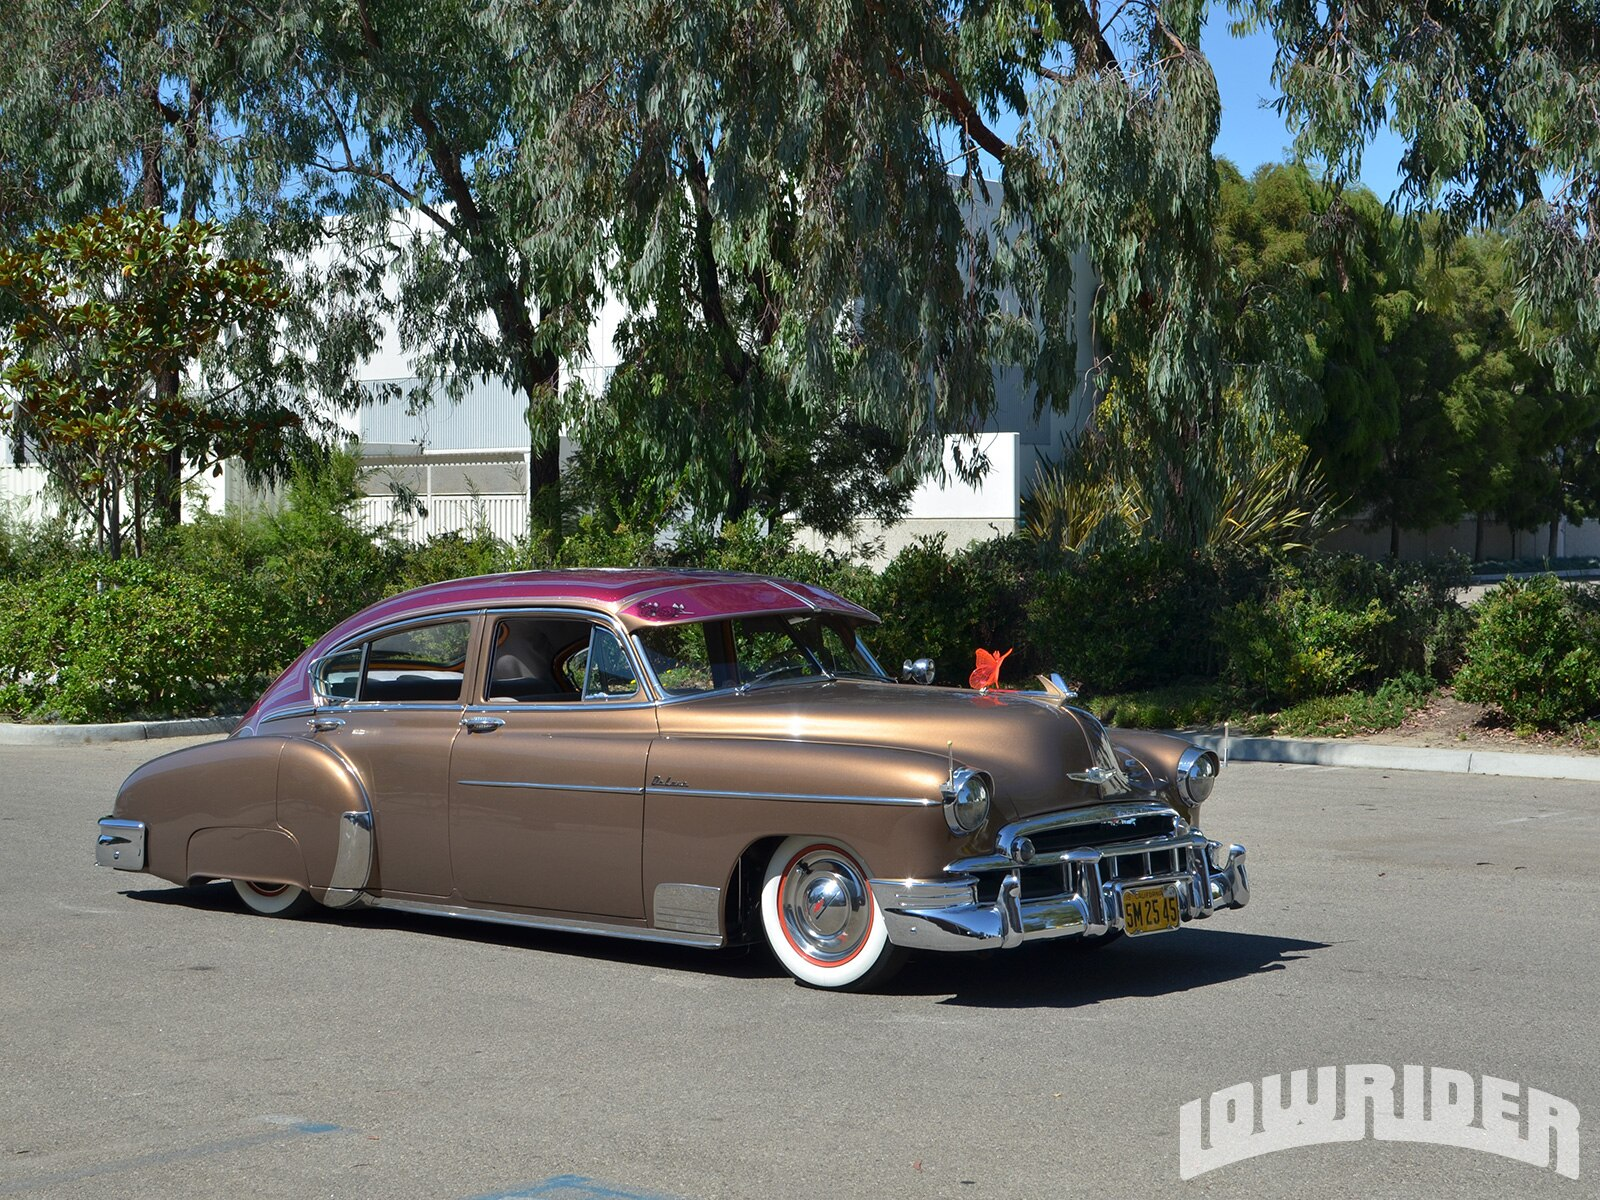 1949-chevrolet-fleetline-front-right-side-view1